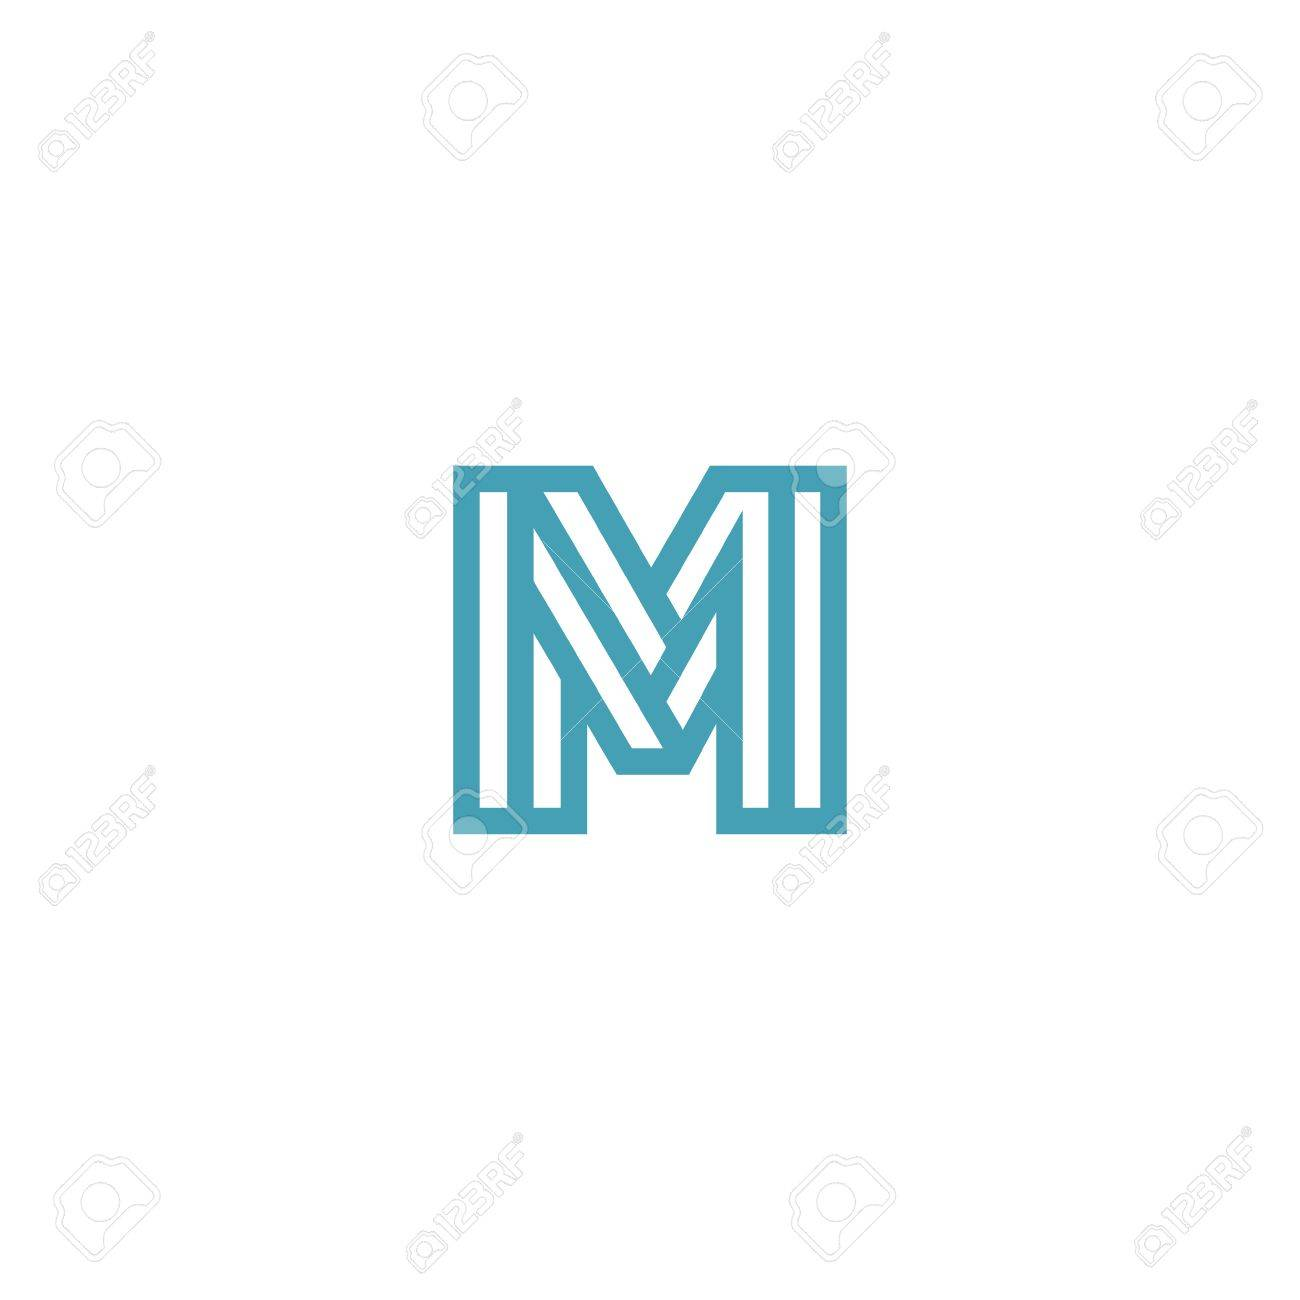 4a19758474f Impossible Letter M Logo design vector template Linear. Type Character  Symbol Monogram Logotype Labyrinth concept